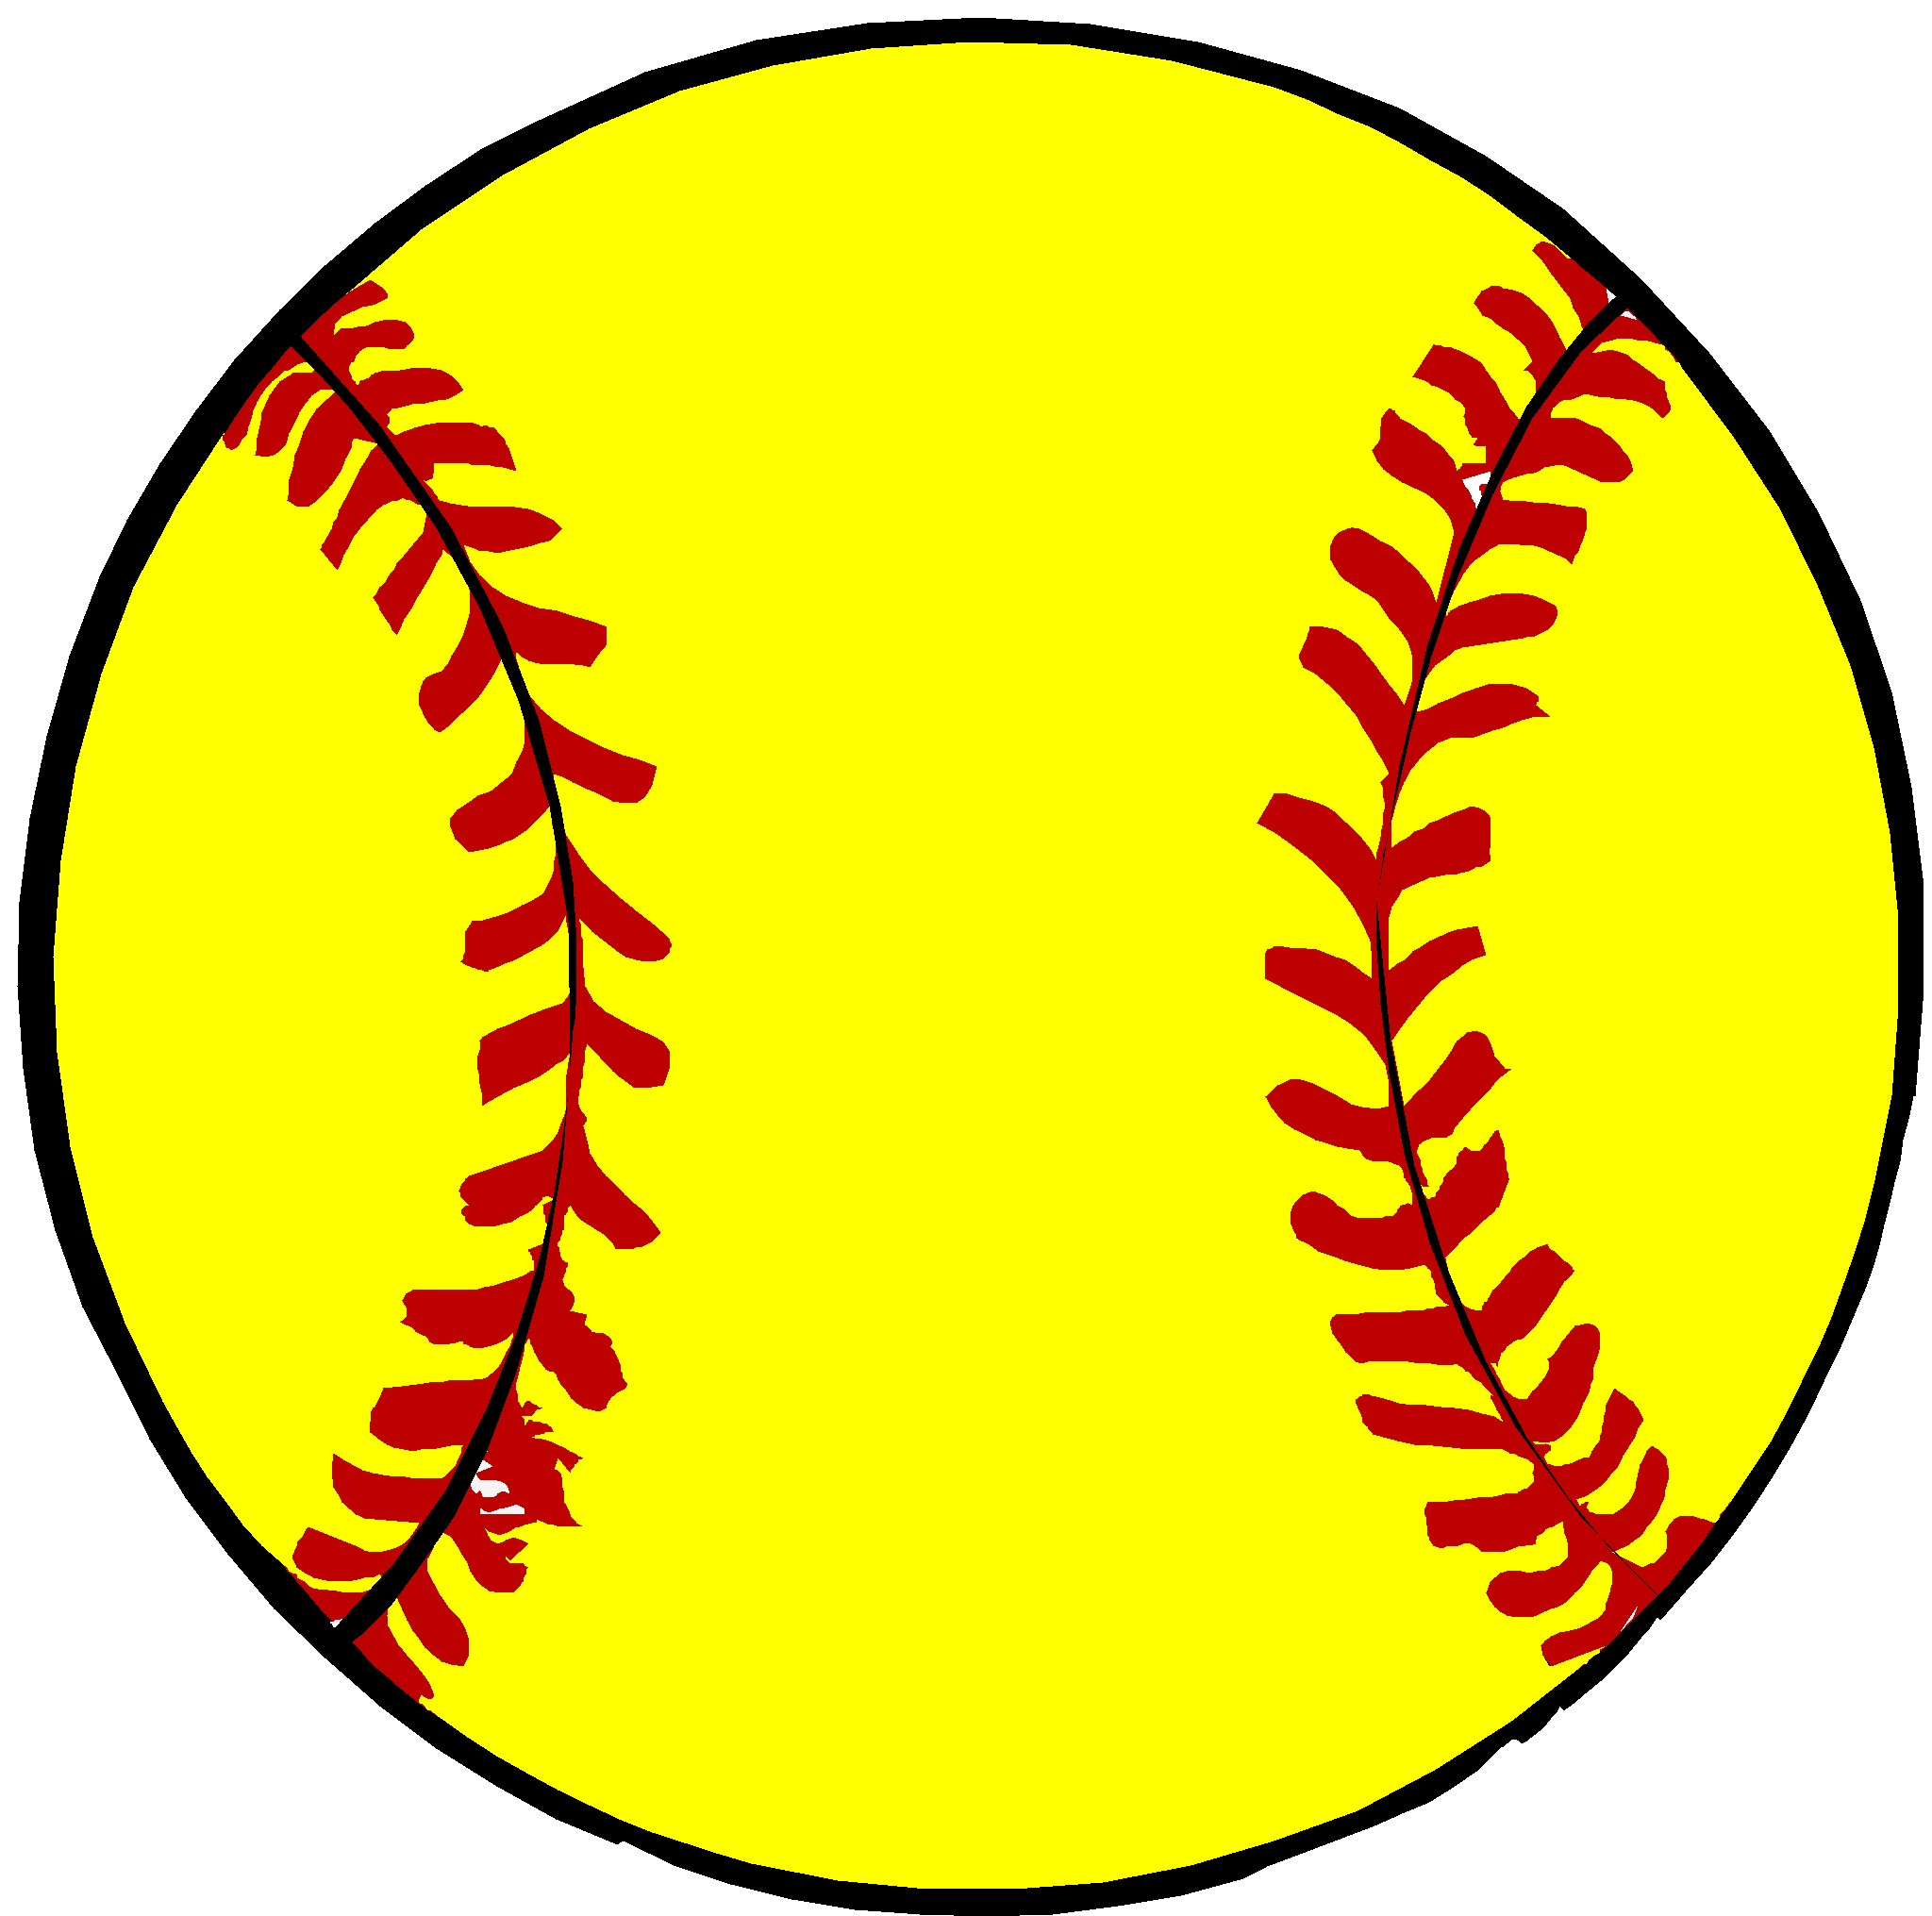 photograph about Printable Softball called Cost-free Softball Clipart Totally free obtain excellent No cost Softball